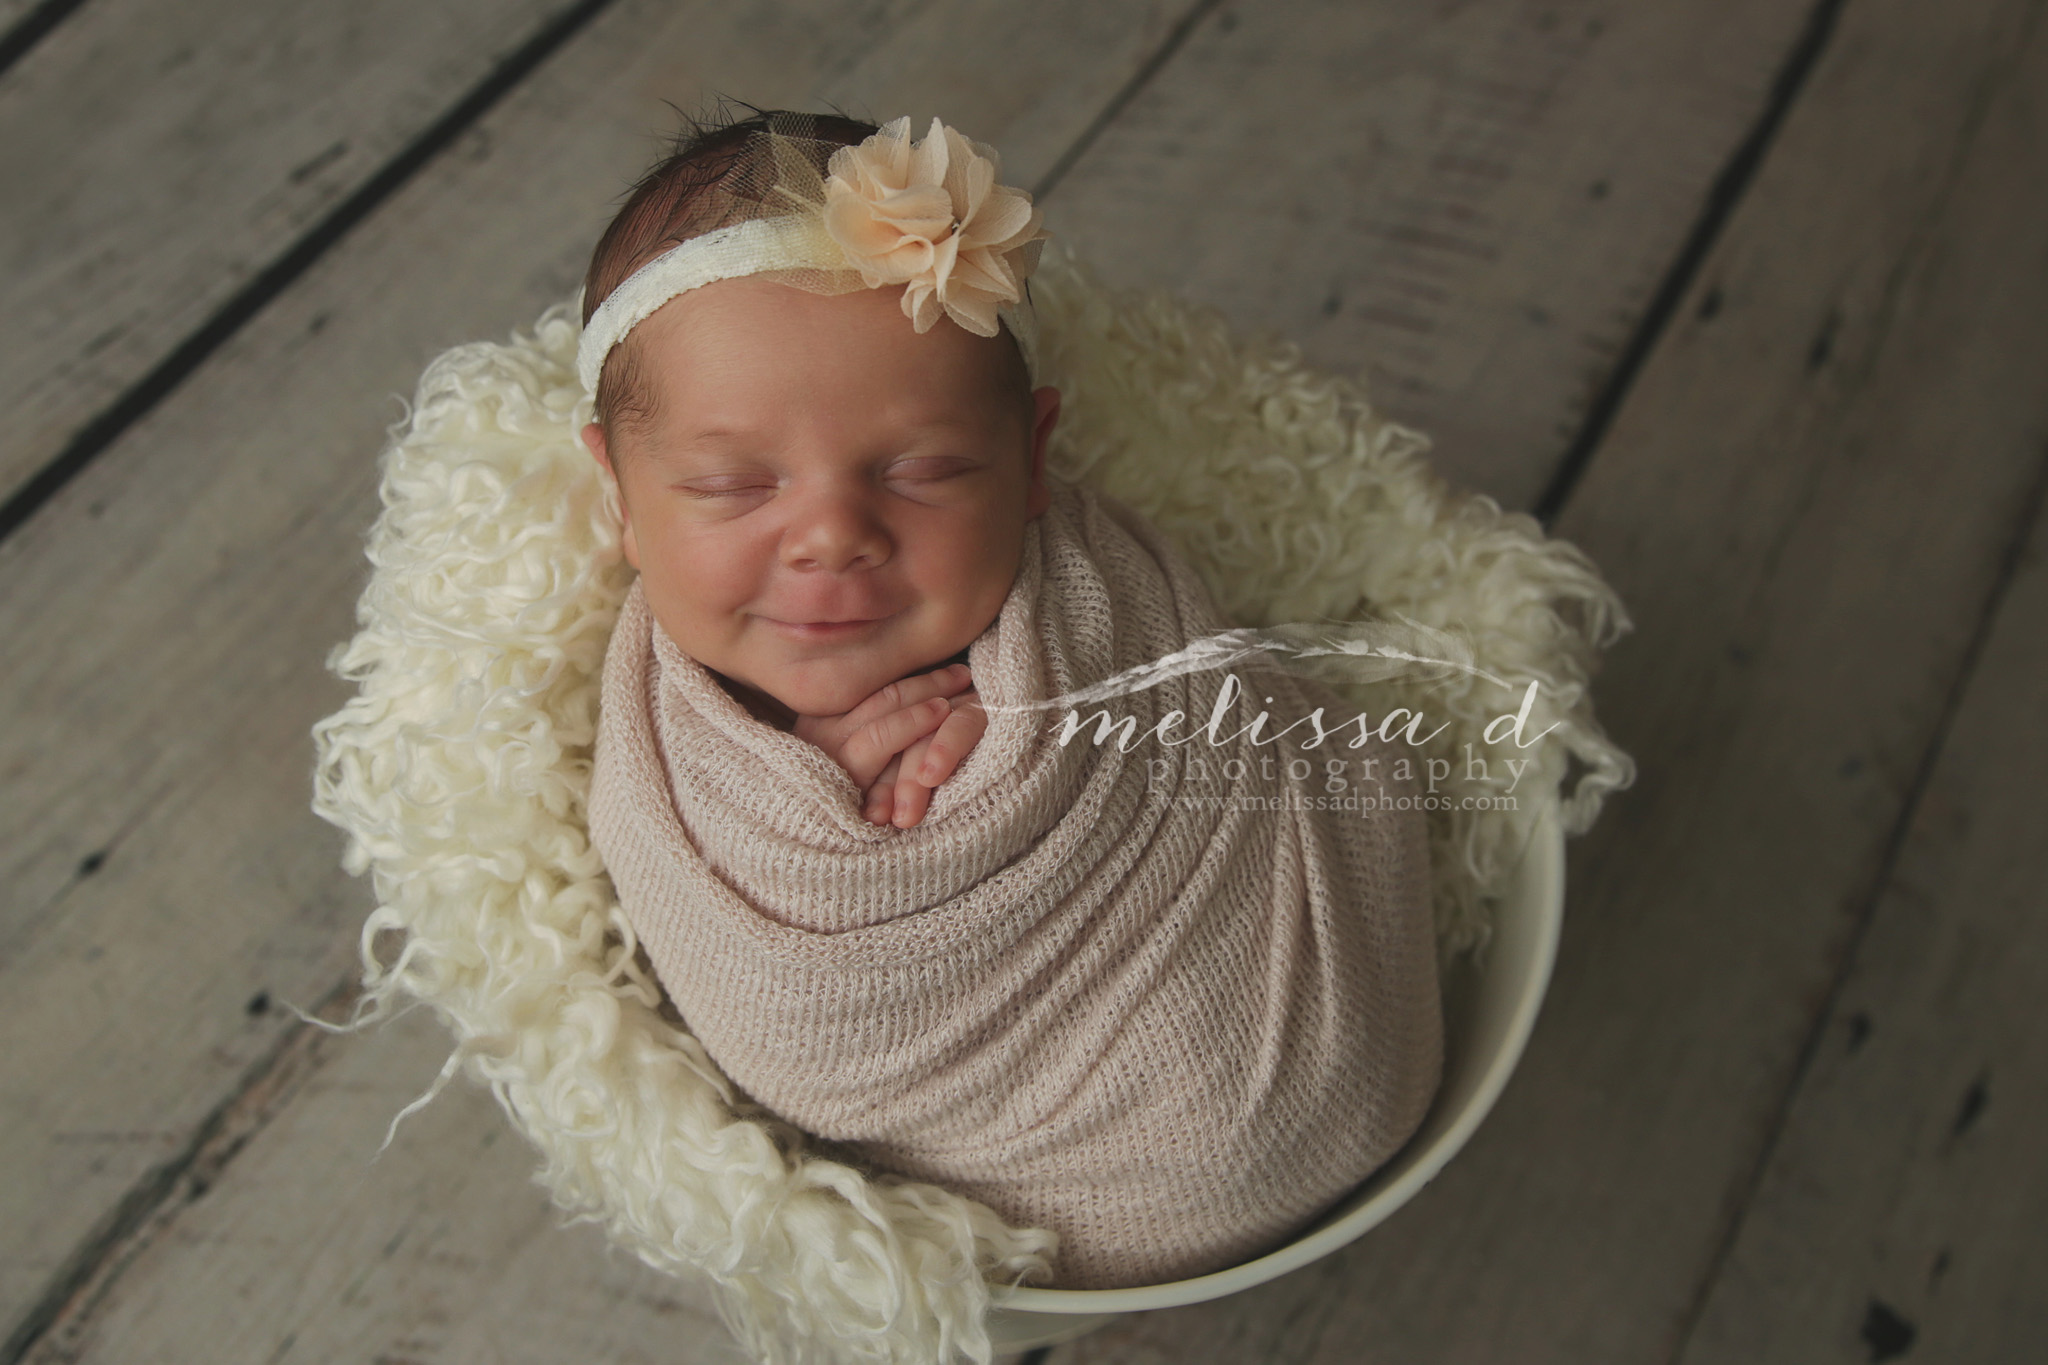 DFW Newborn Photographer bucket pose